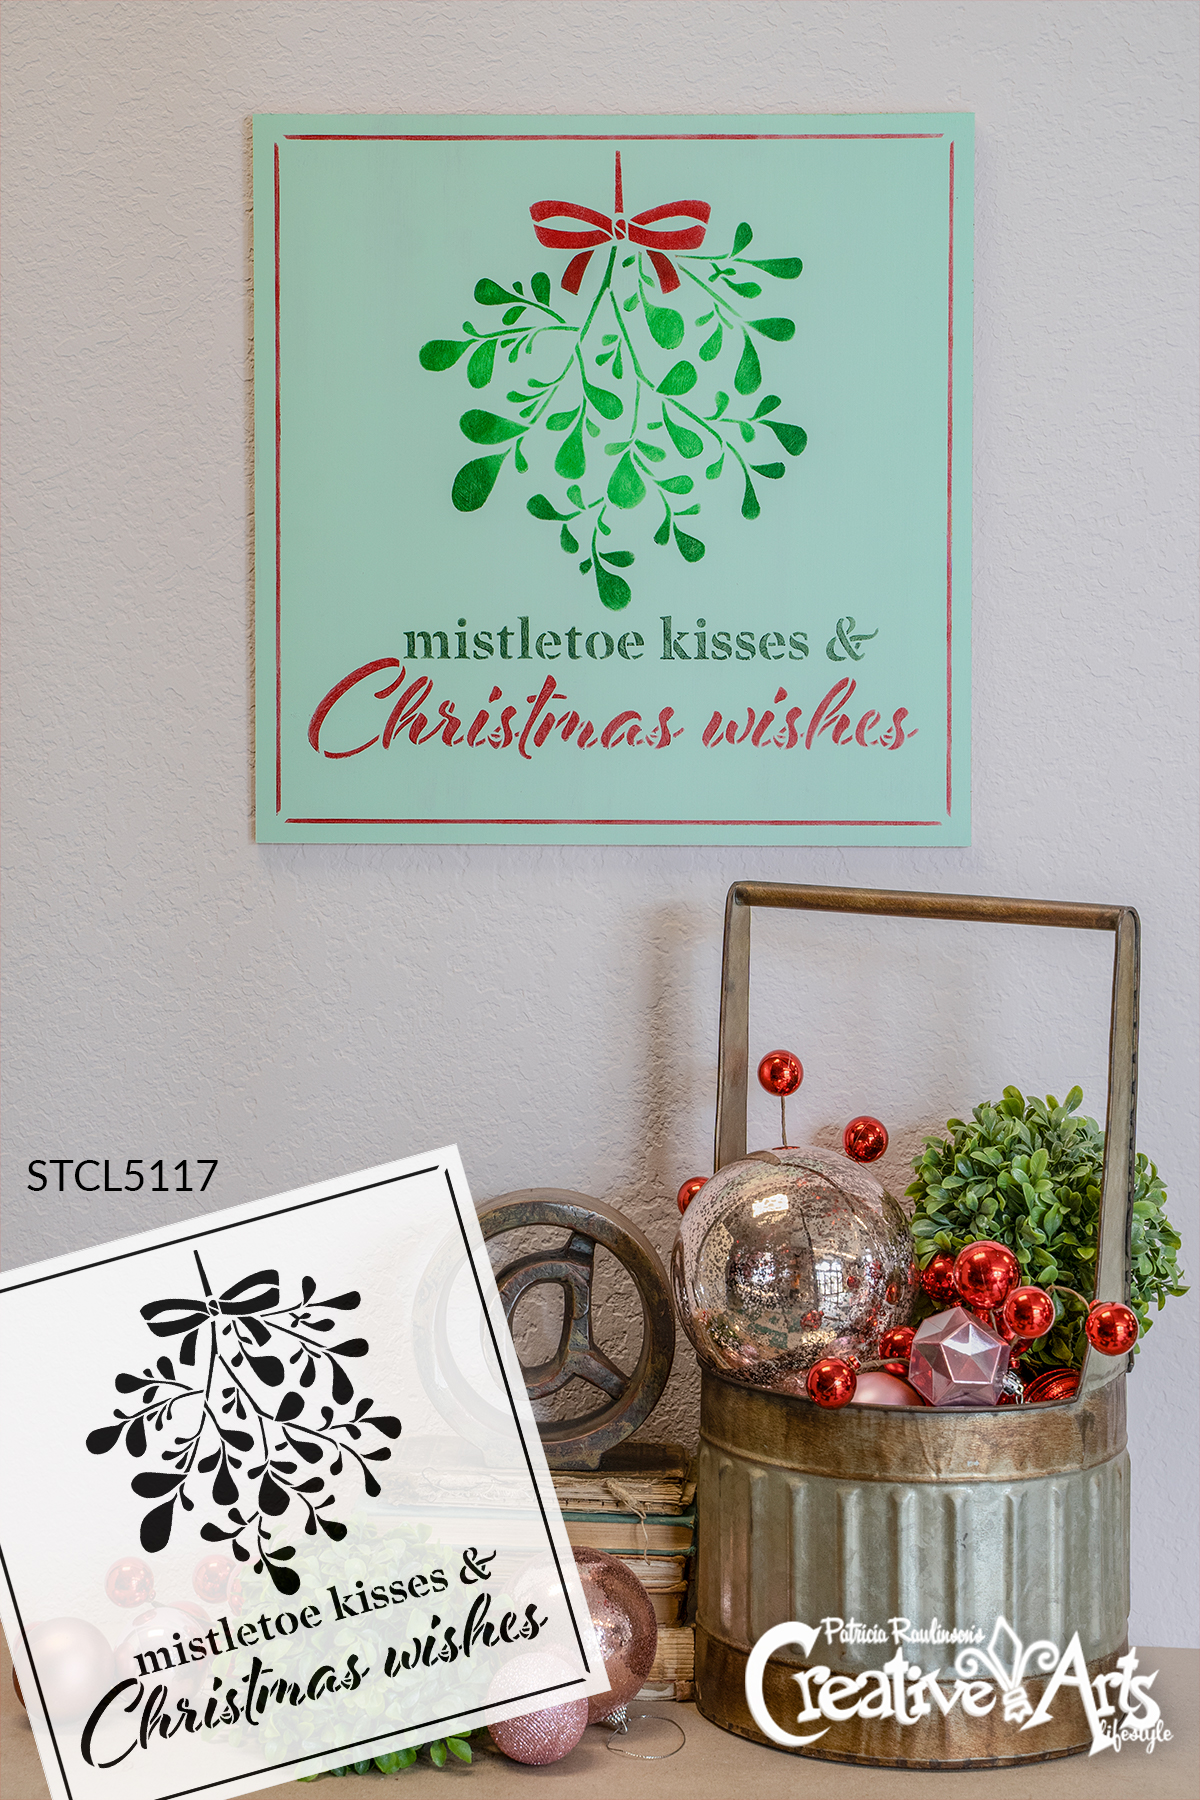 Mistletoe Kisses Christmas Wishes Stencil by StudioR12   DIY Holiday Home Decor Gift   Craft & Paint Wood Sign   Reusable Mylar Template   Select Size